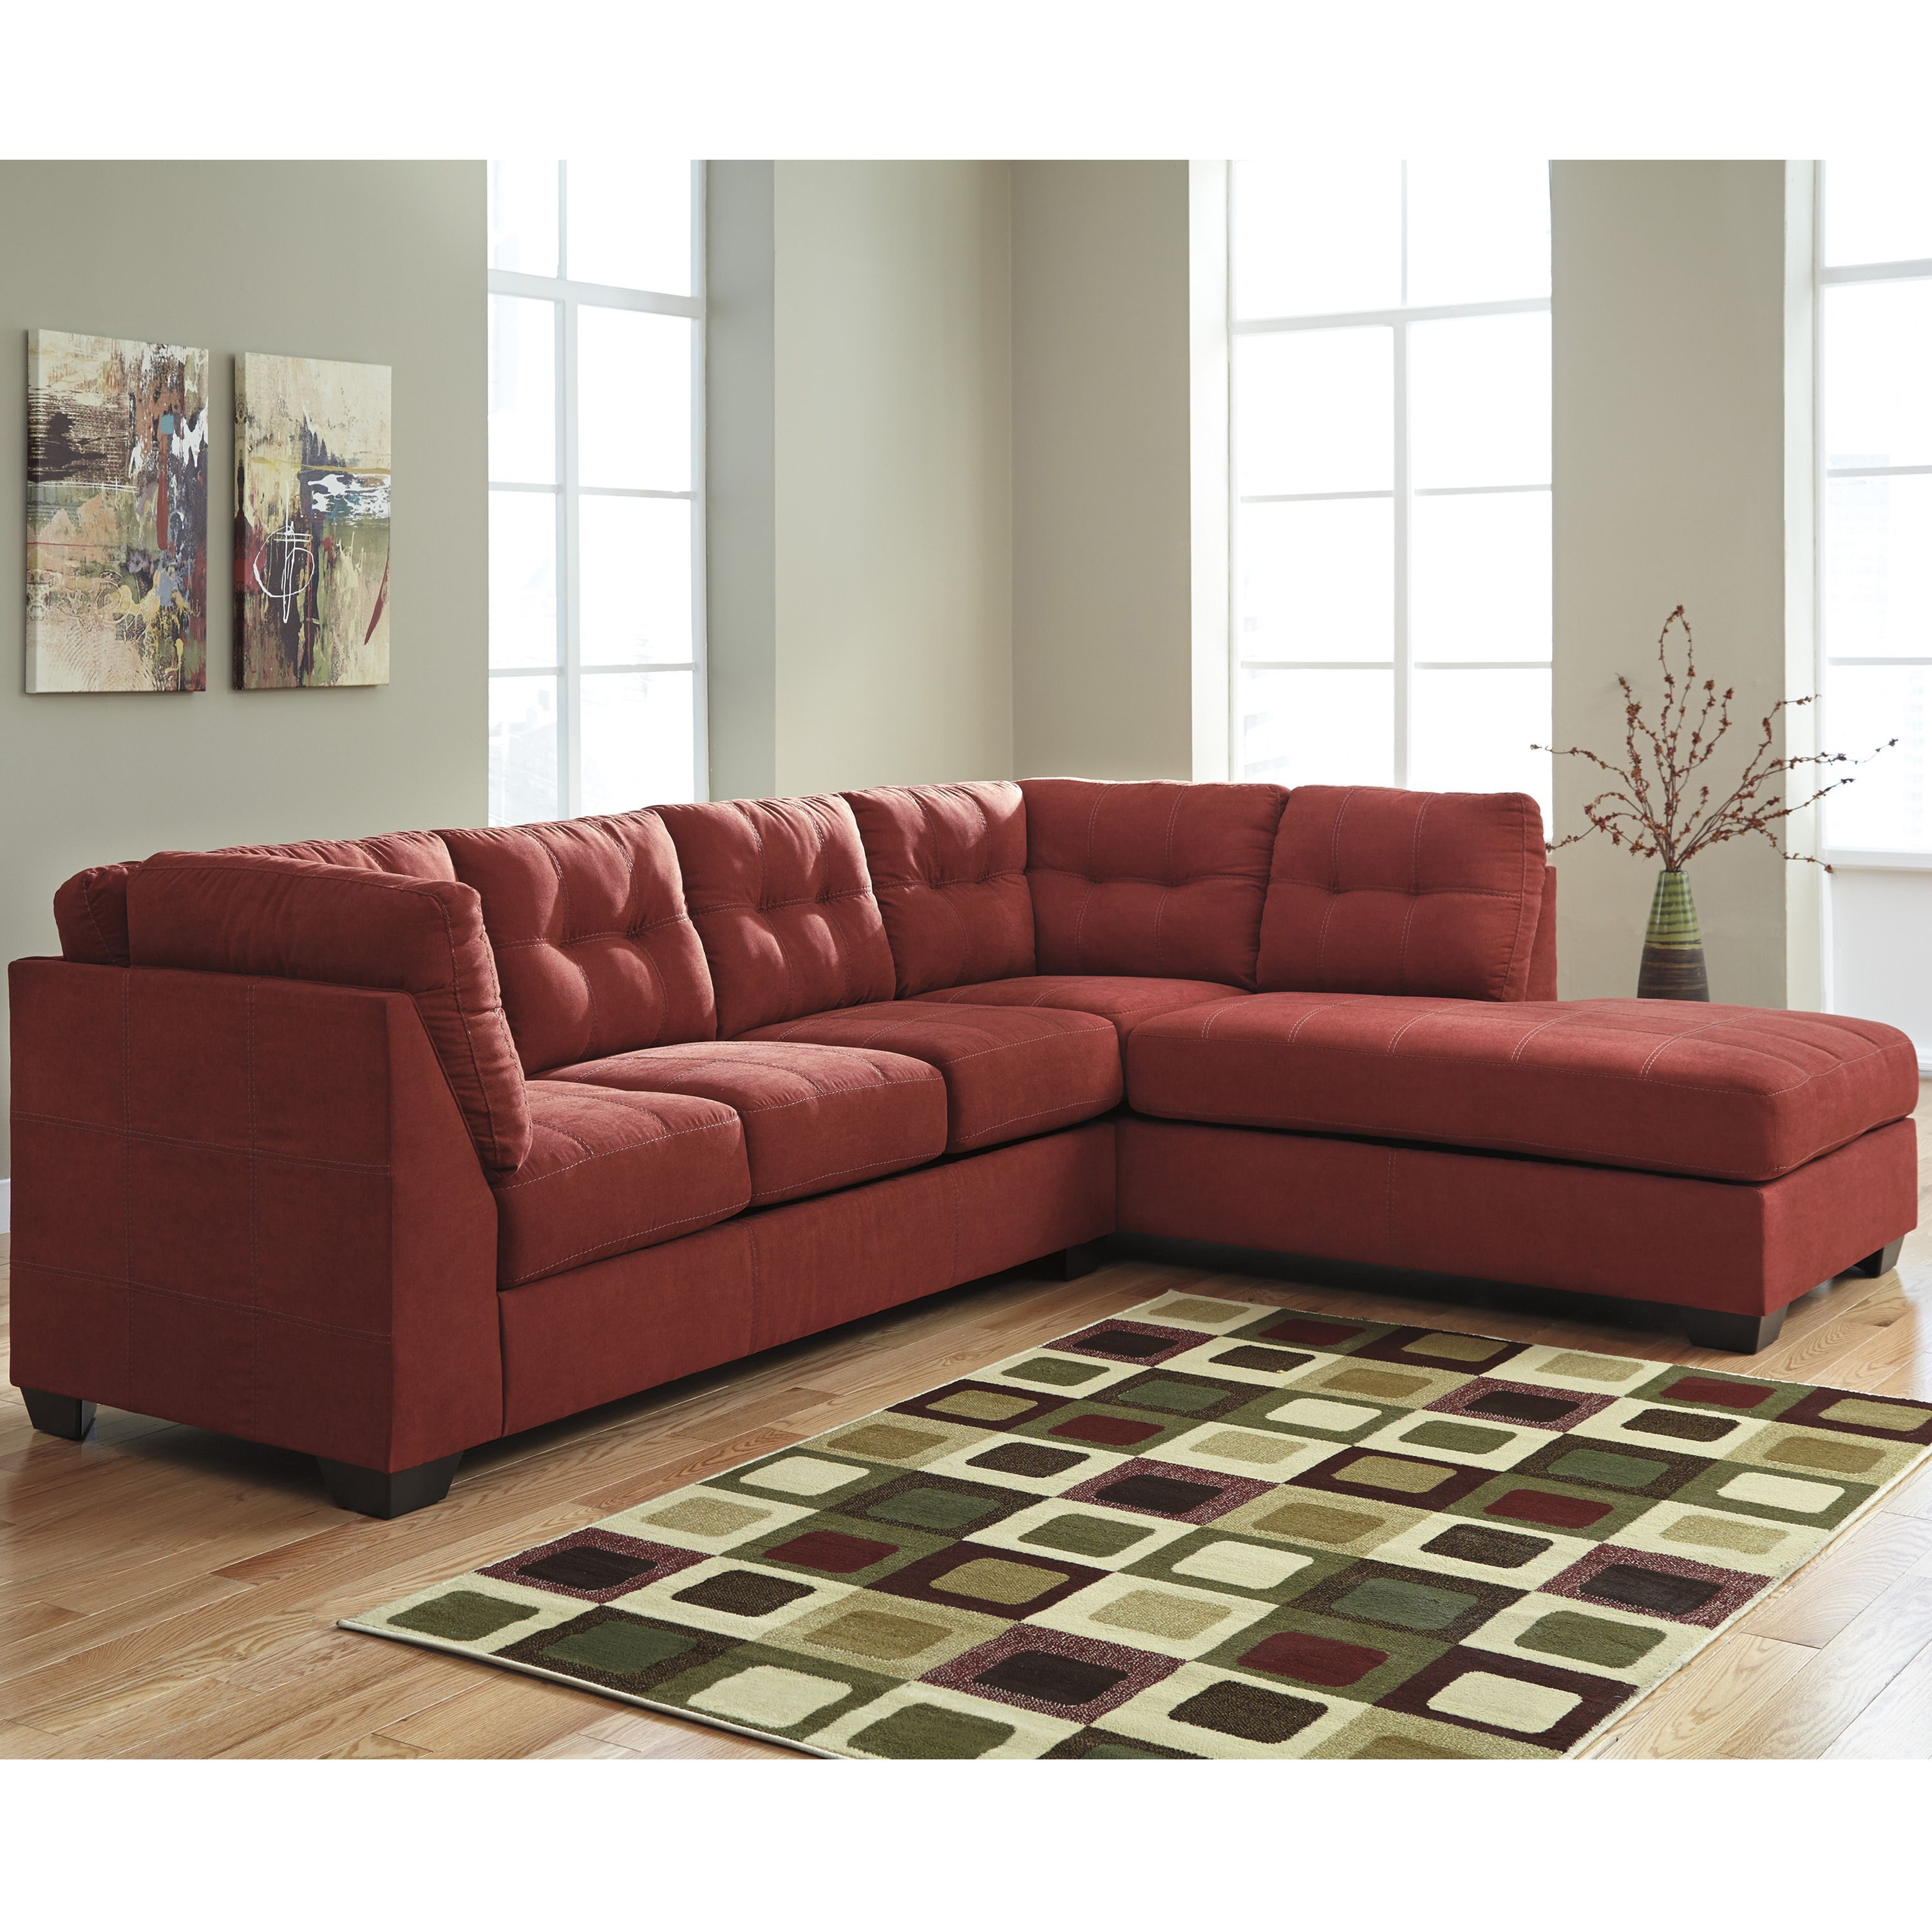 Flash Furniture Benchcraft Maier Microfiber Sectional with Right